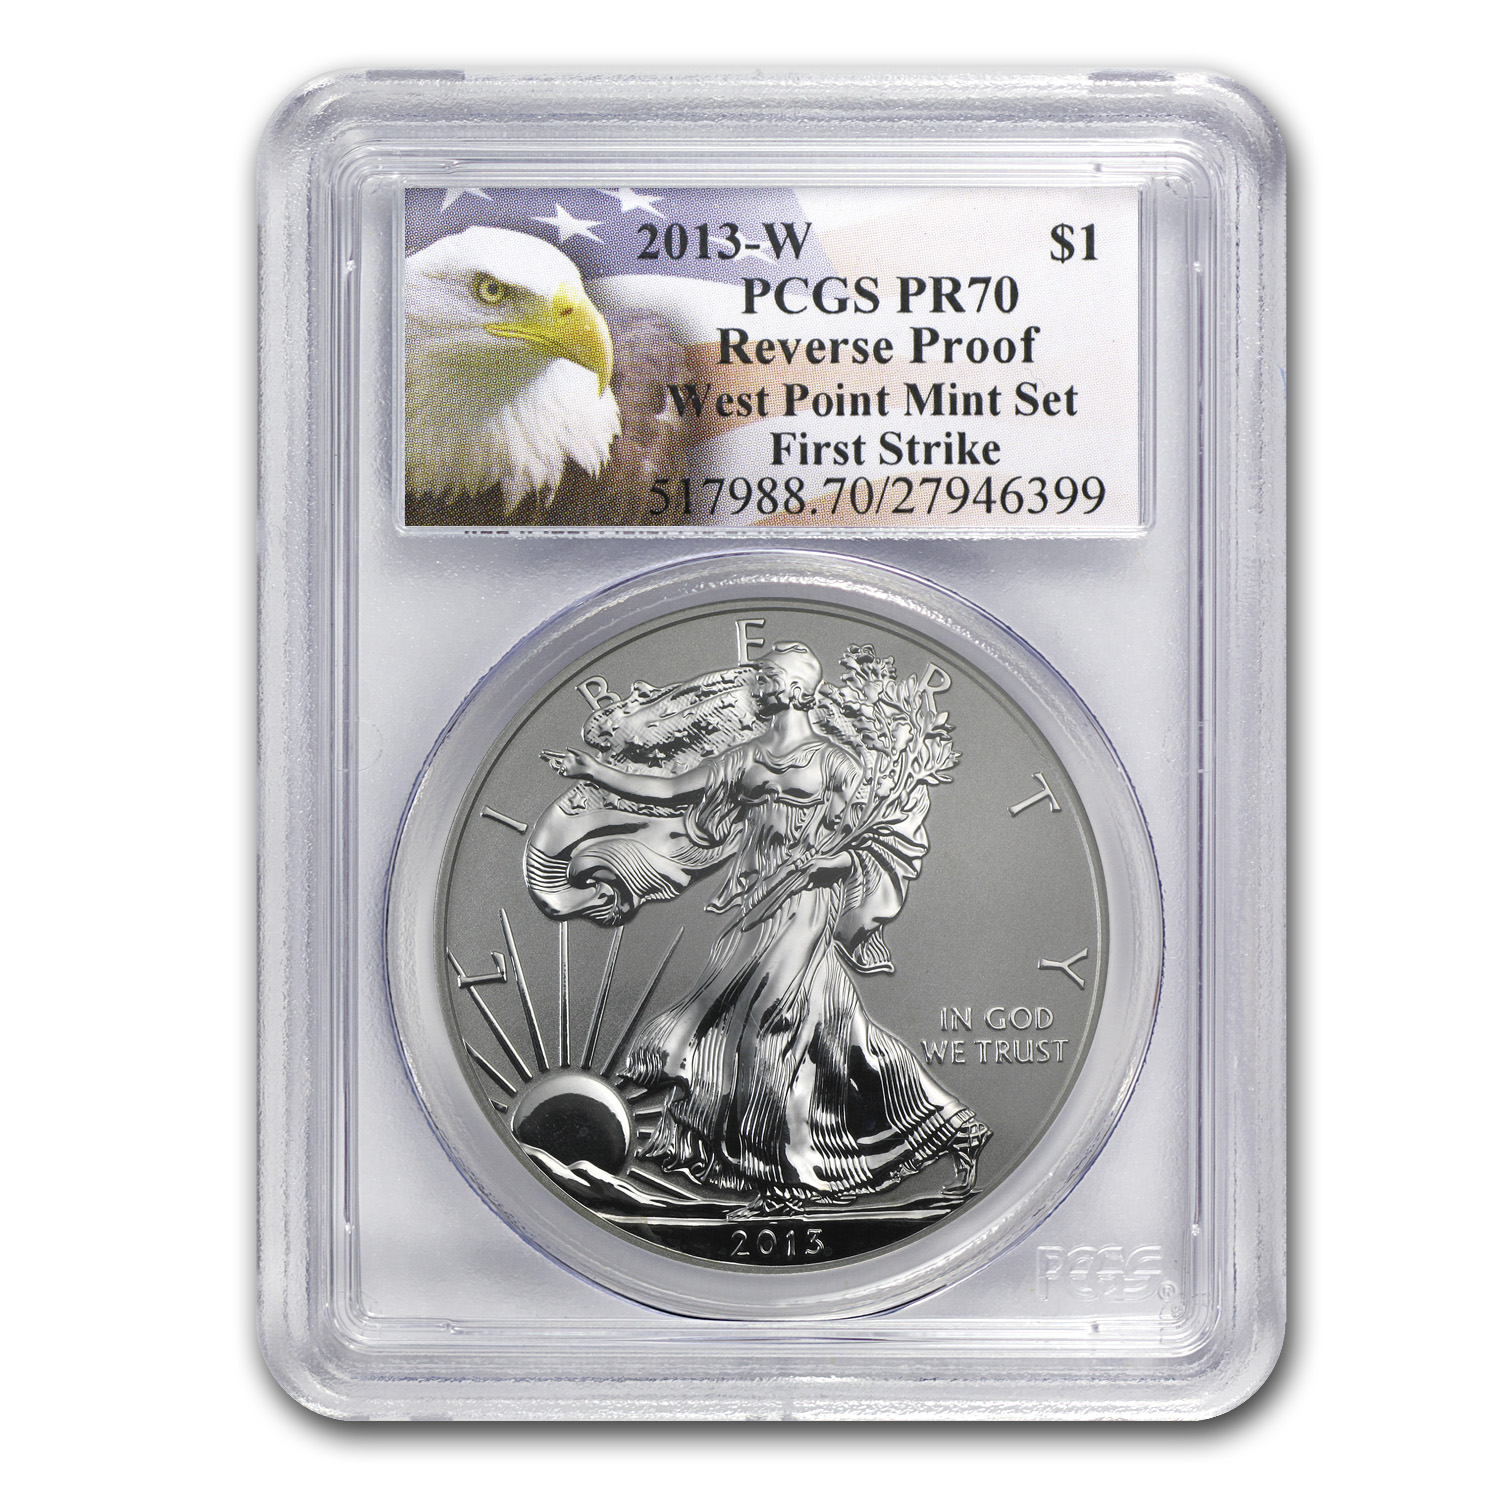 2013-W (Reverse Proof) Silver Eagle PCGS PR-70 First Strike